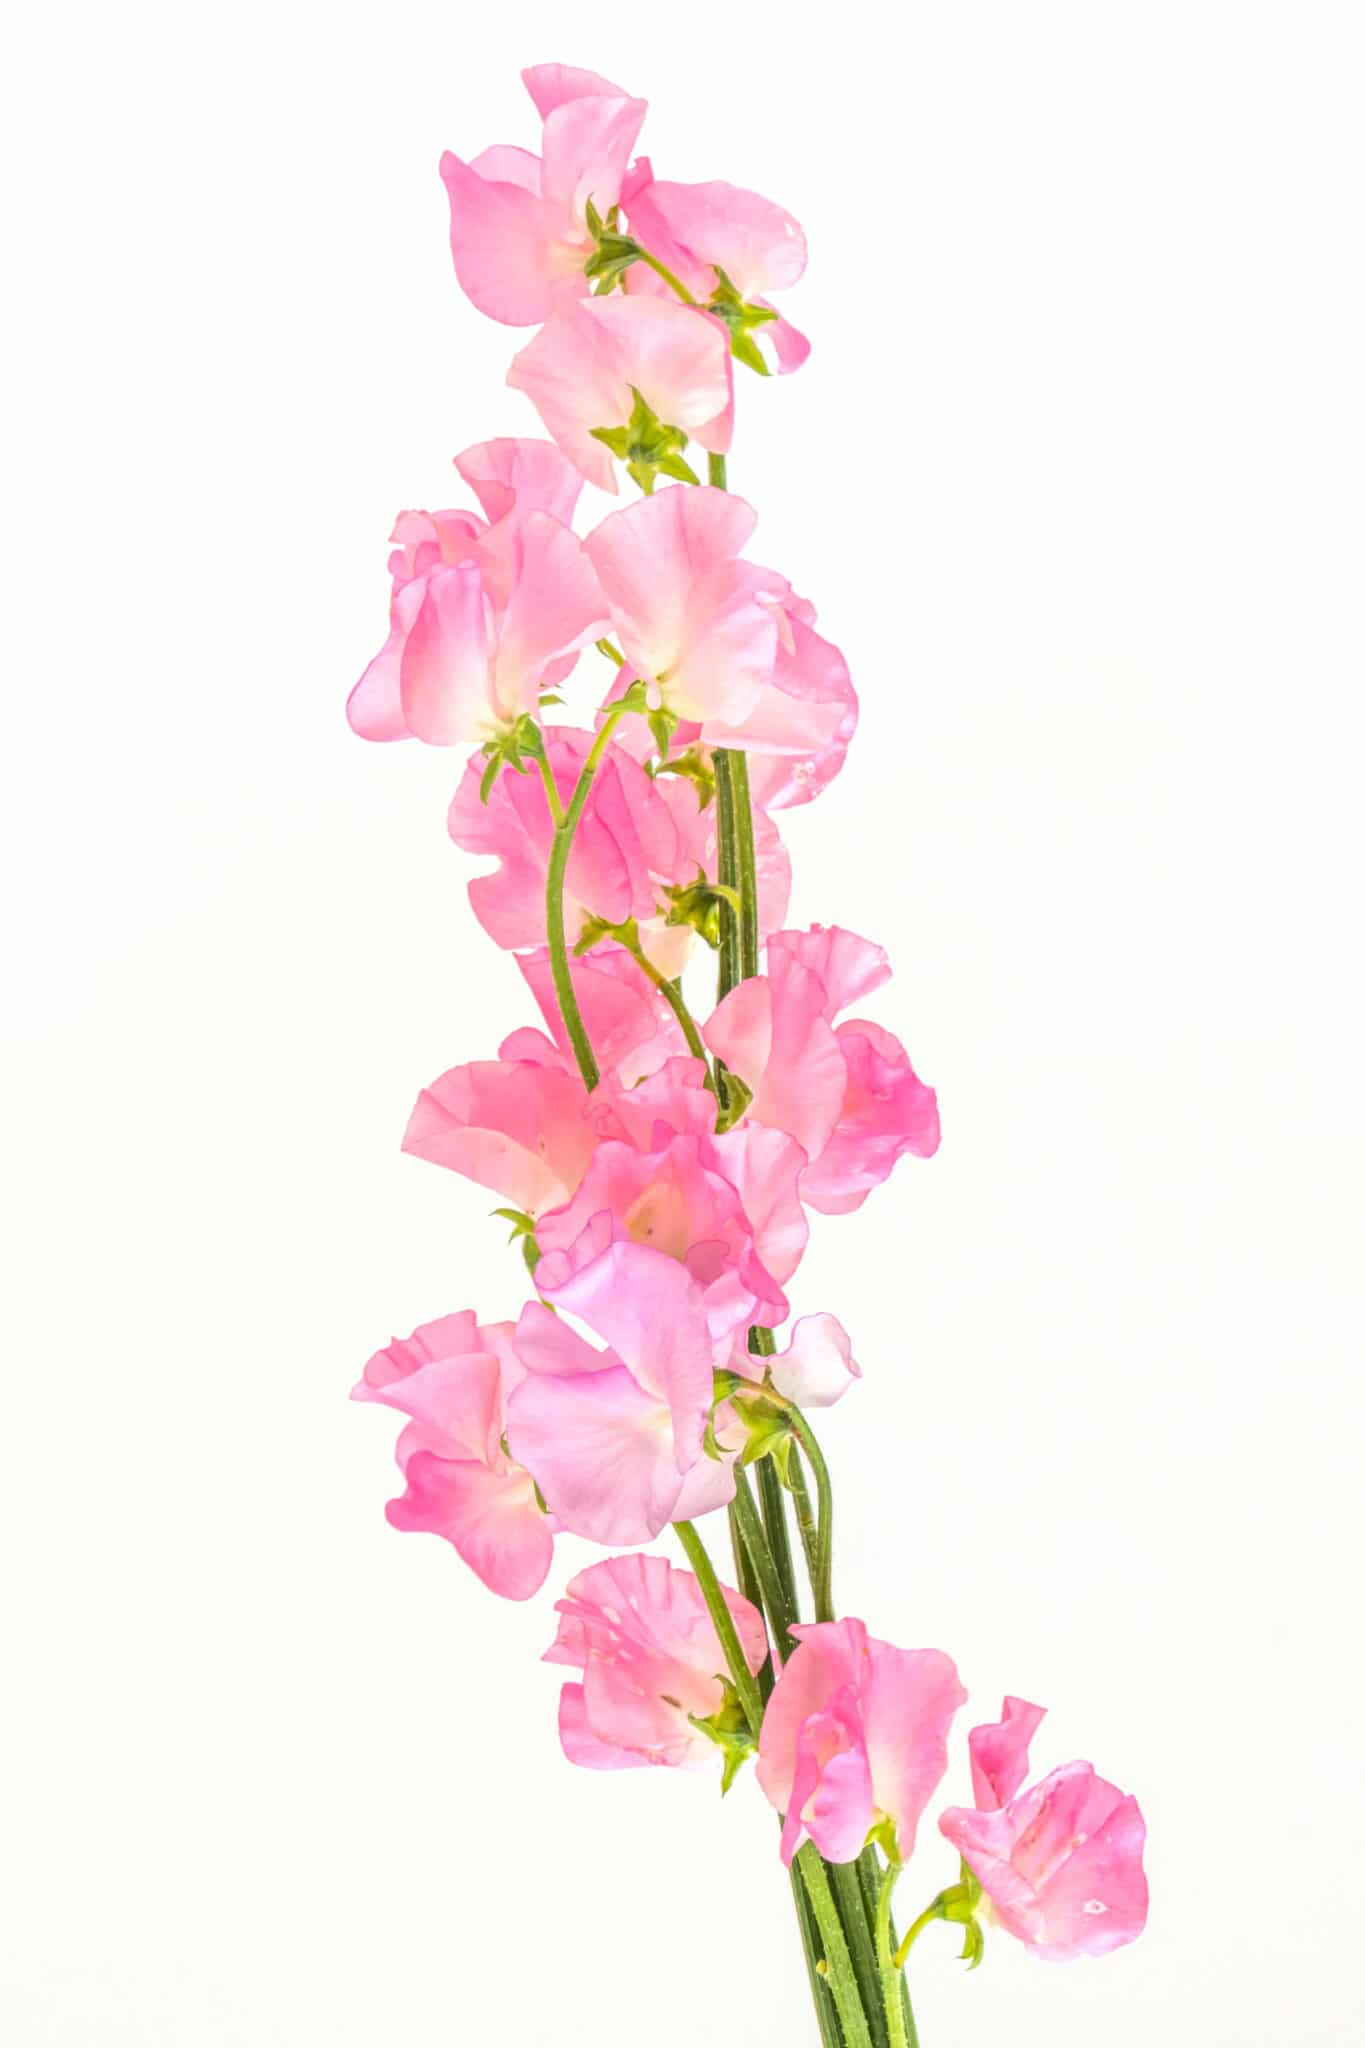 Soft pink petaled sweet pea flowers against a bright white background.